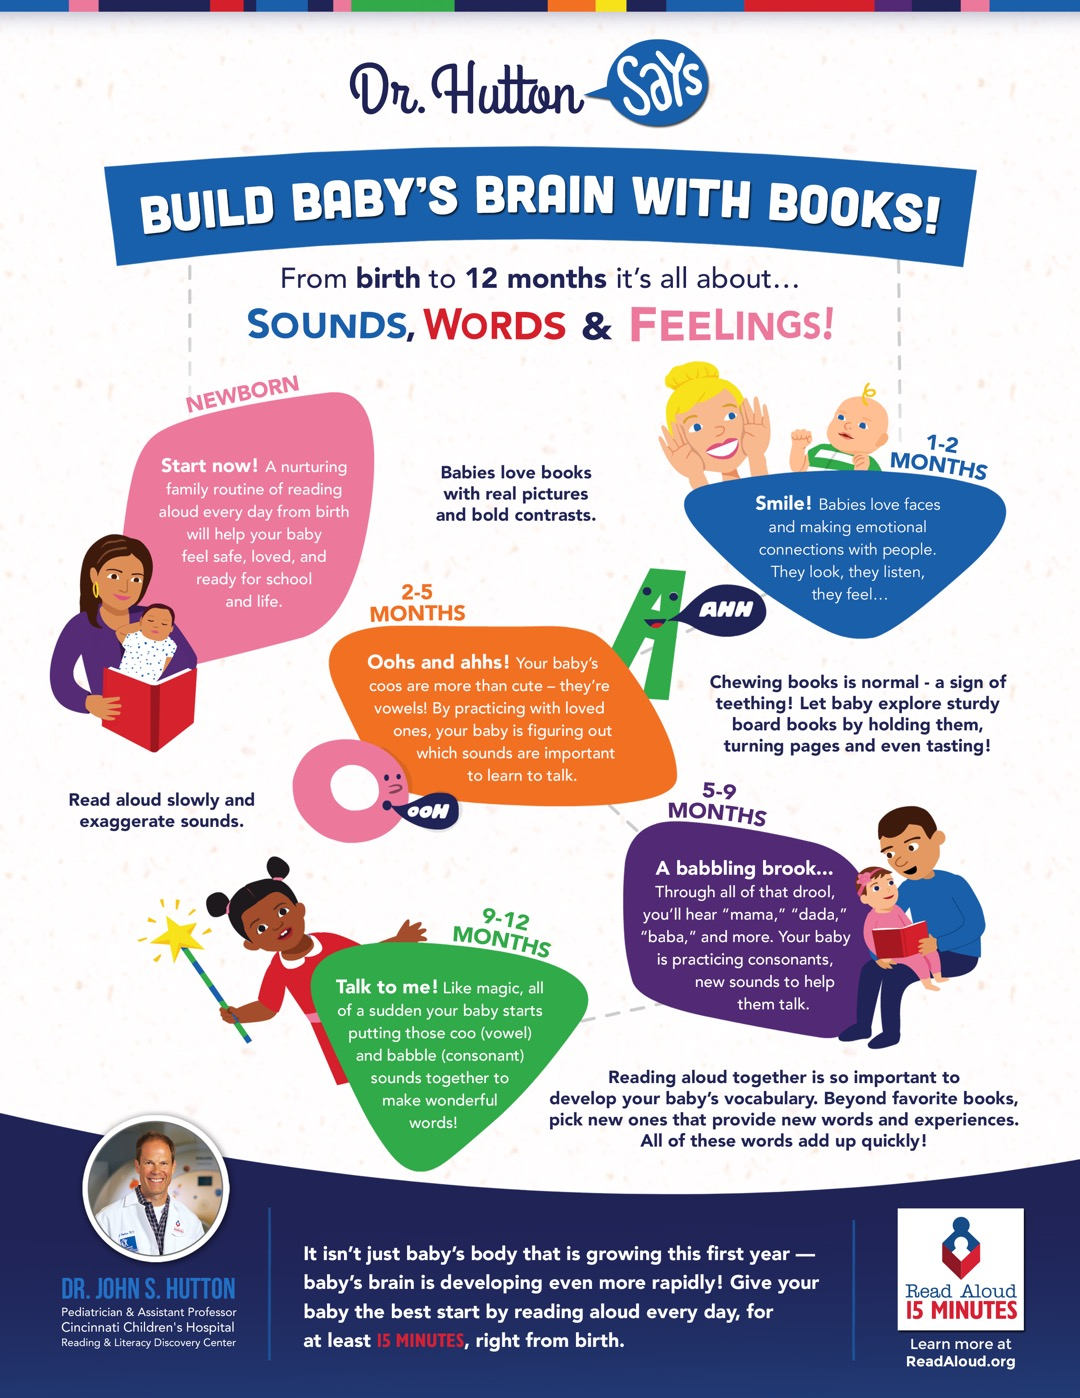 How to build baby's brain with books #infographic